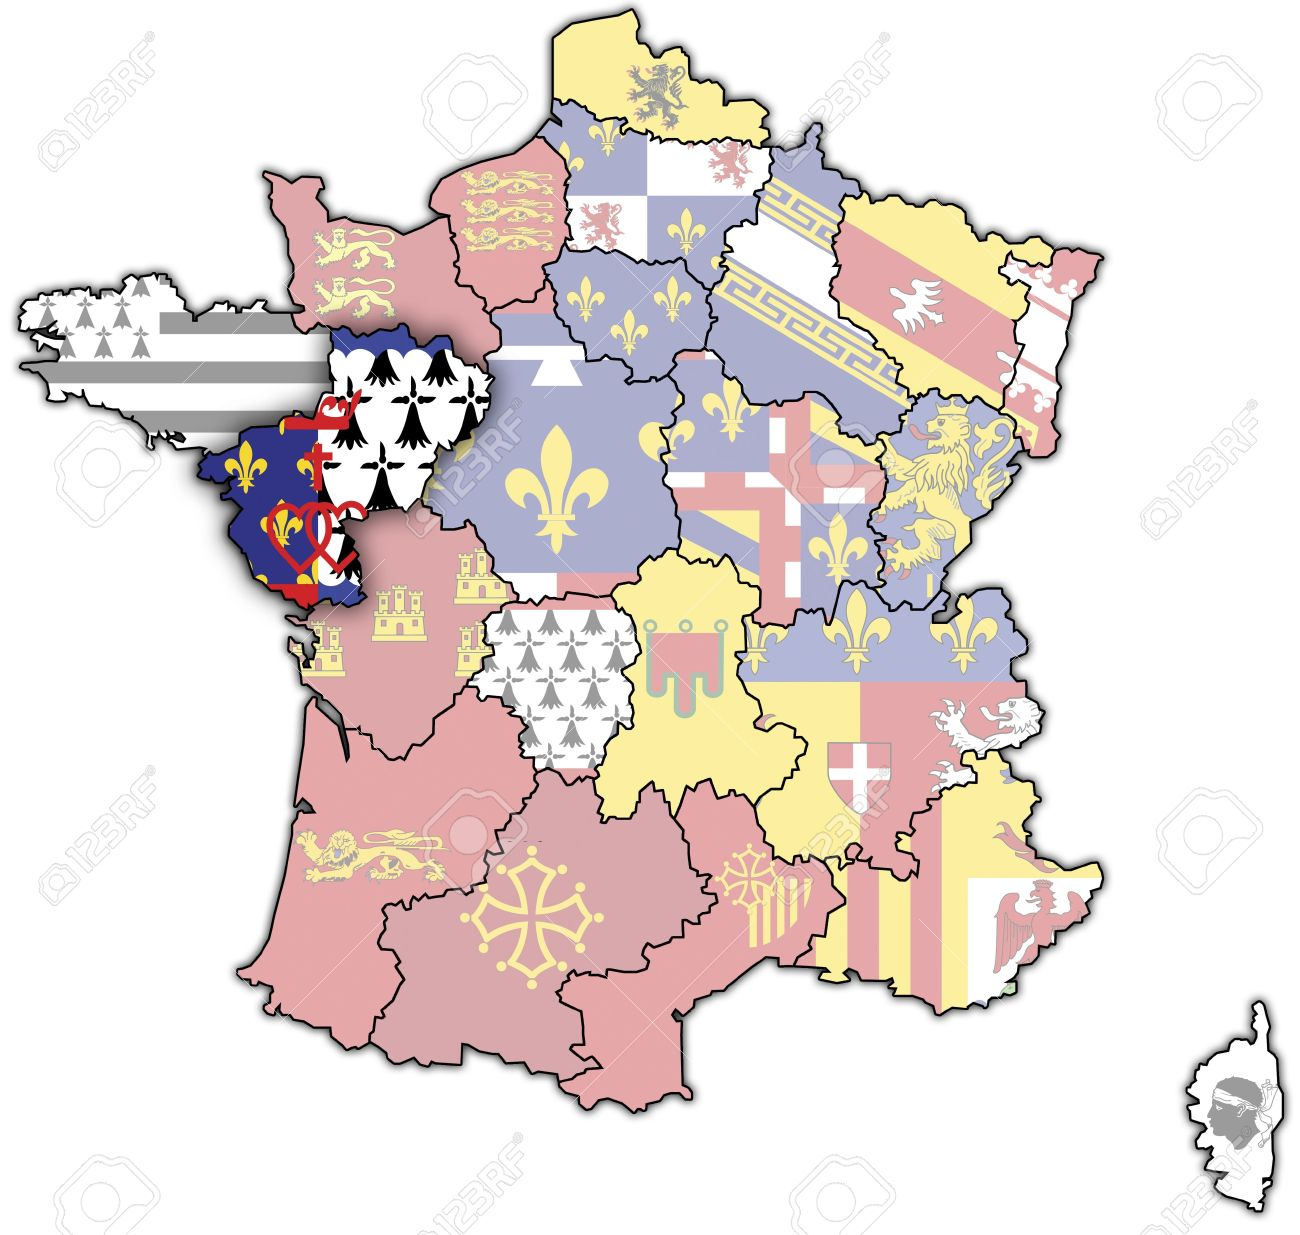 Pays De La Loire On Old Map Of France With Flags Of Administrative.